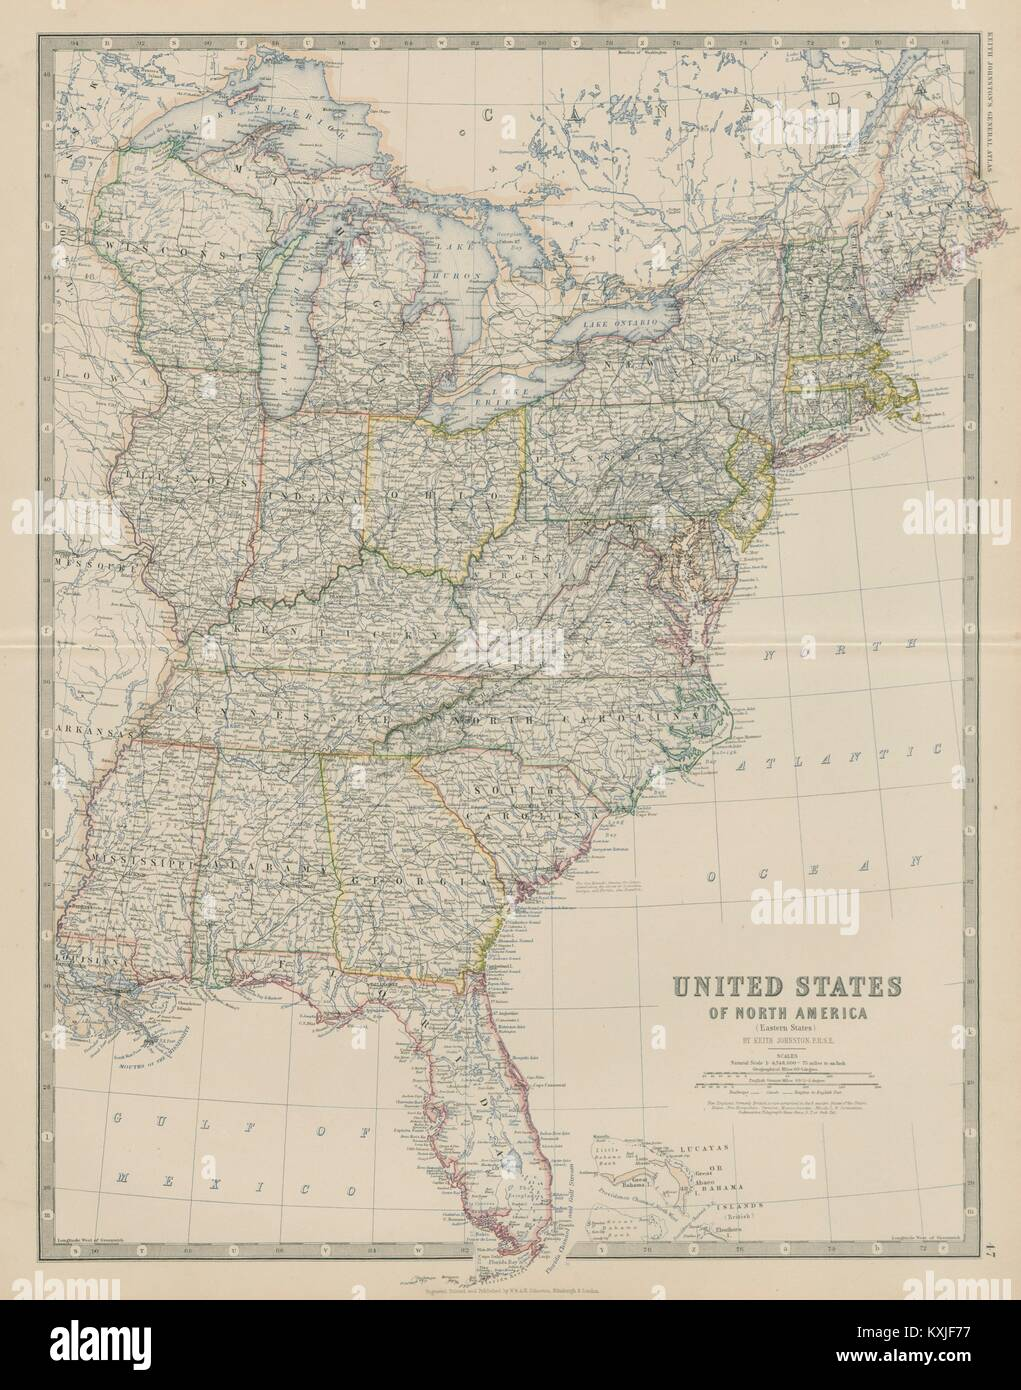 United States of North America (Eastern States). USA. 50x60cm Stock ...